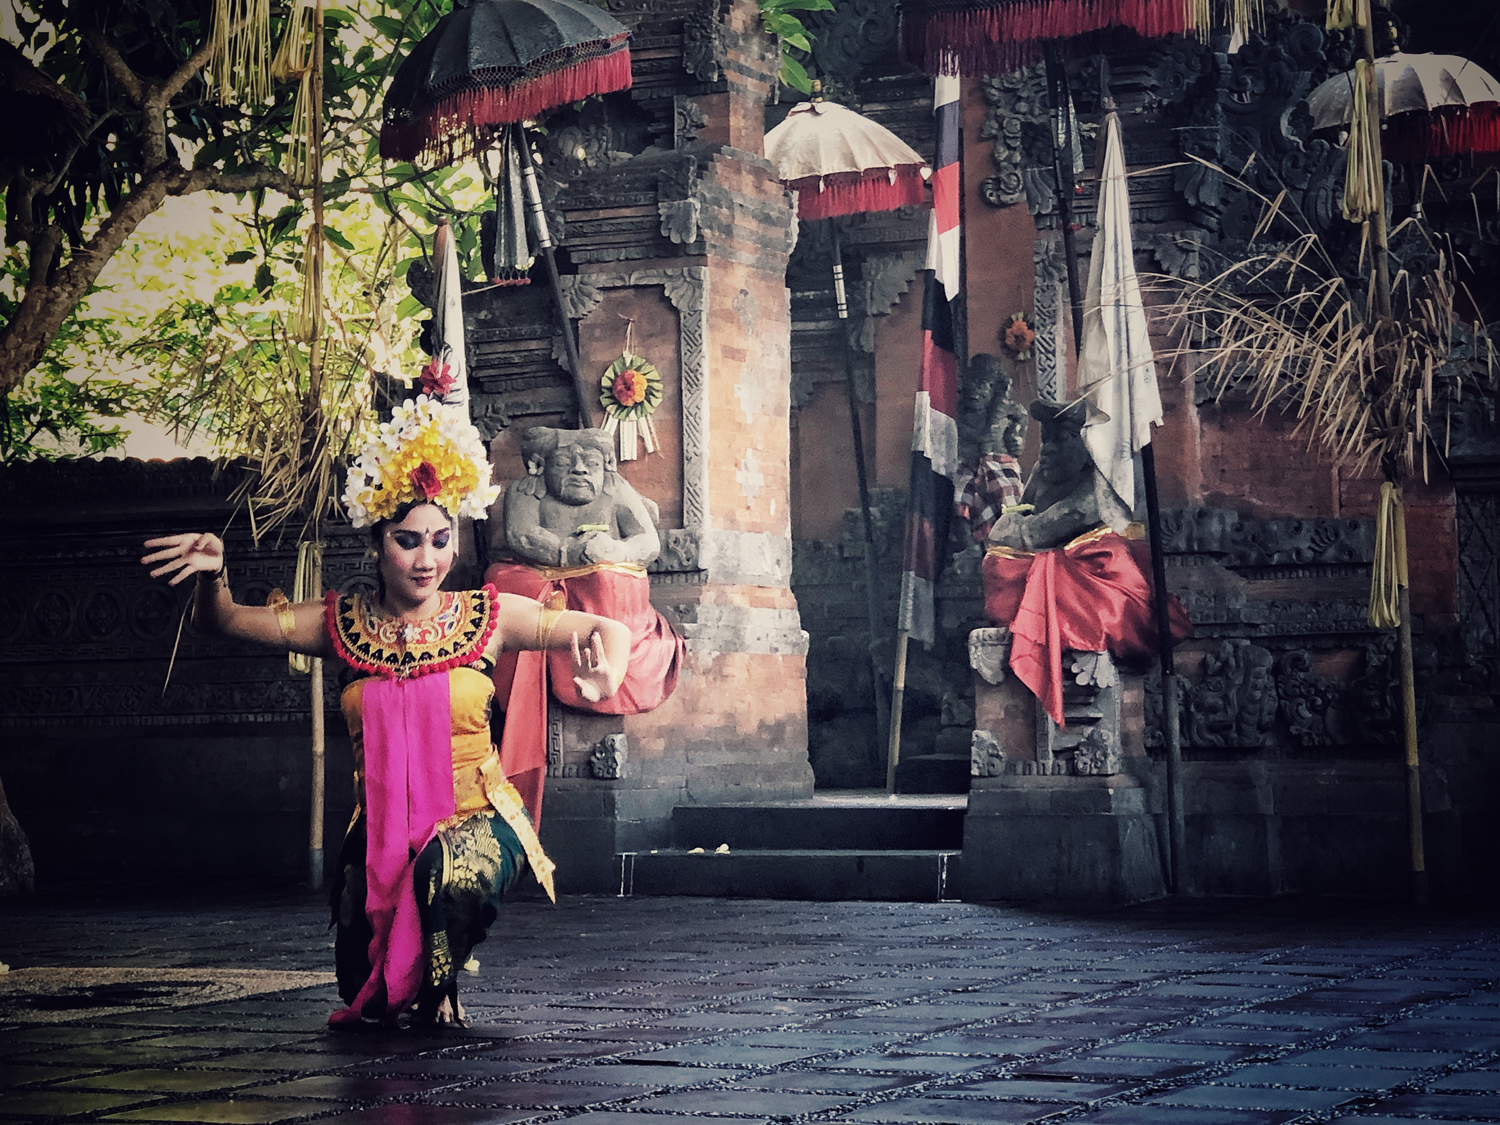 The Art of Travel - Asia and Southeast Asia